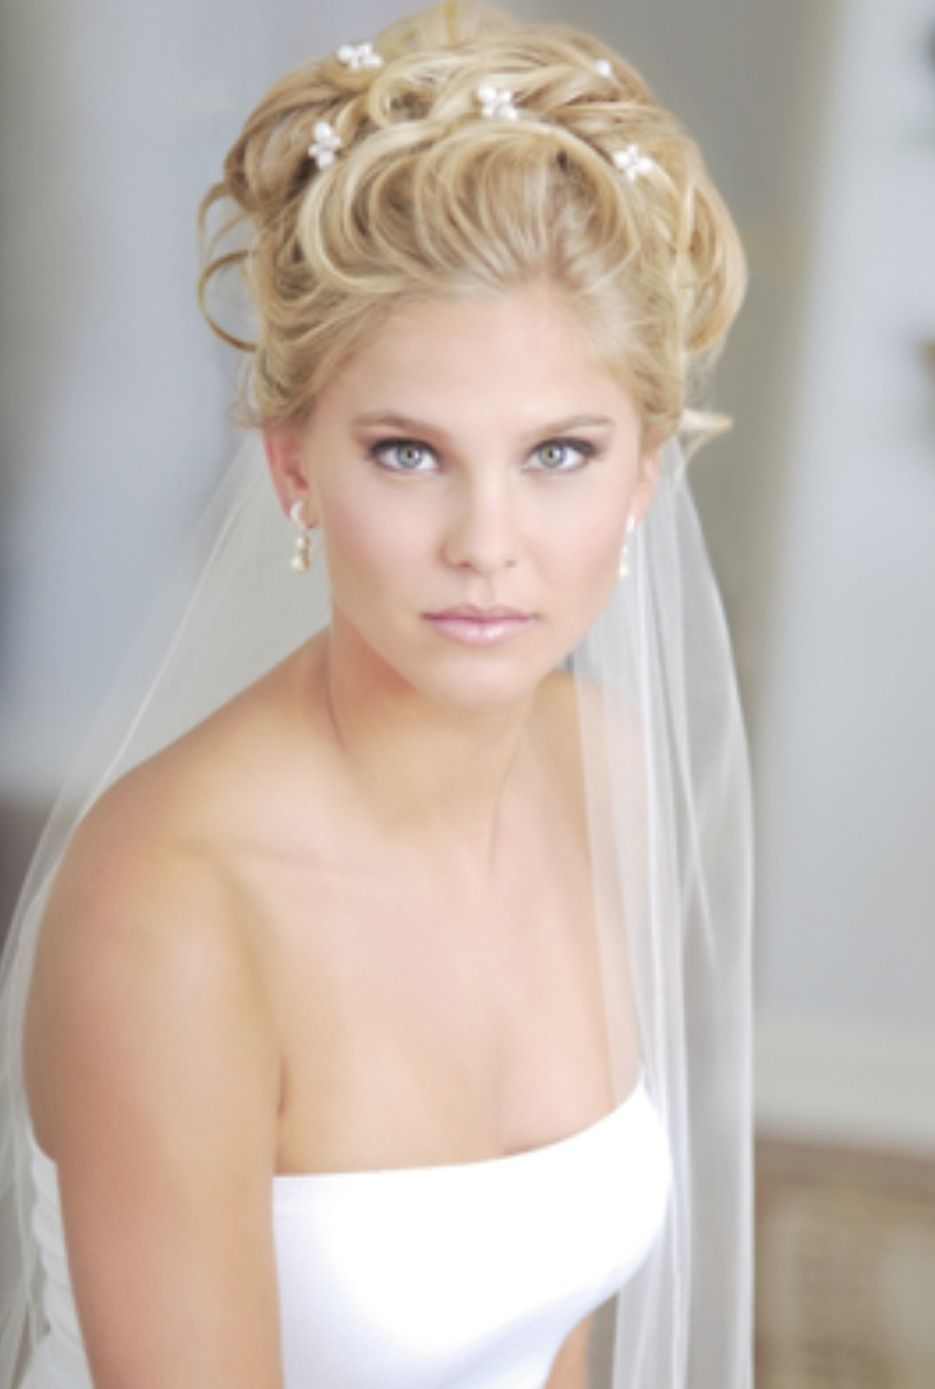 Up with veil wedding bridal hair u beauty pinterest veil and